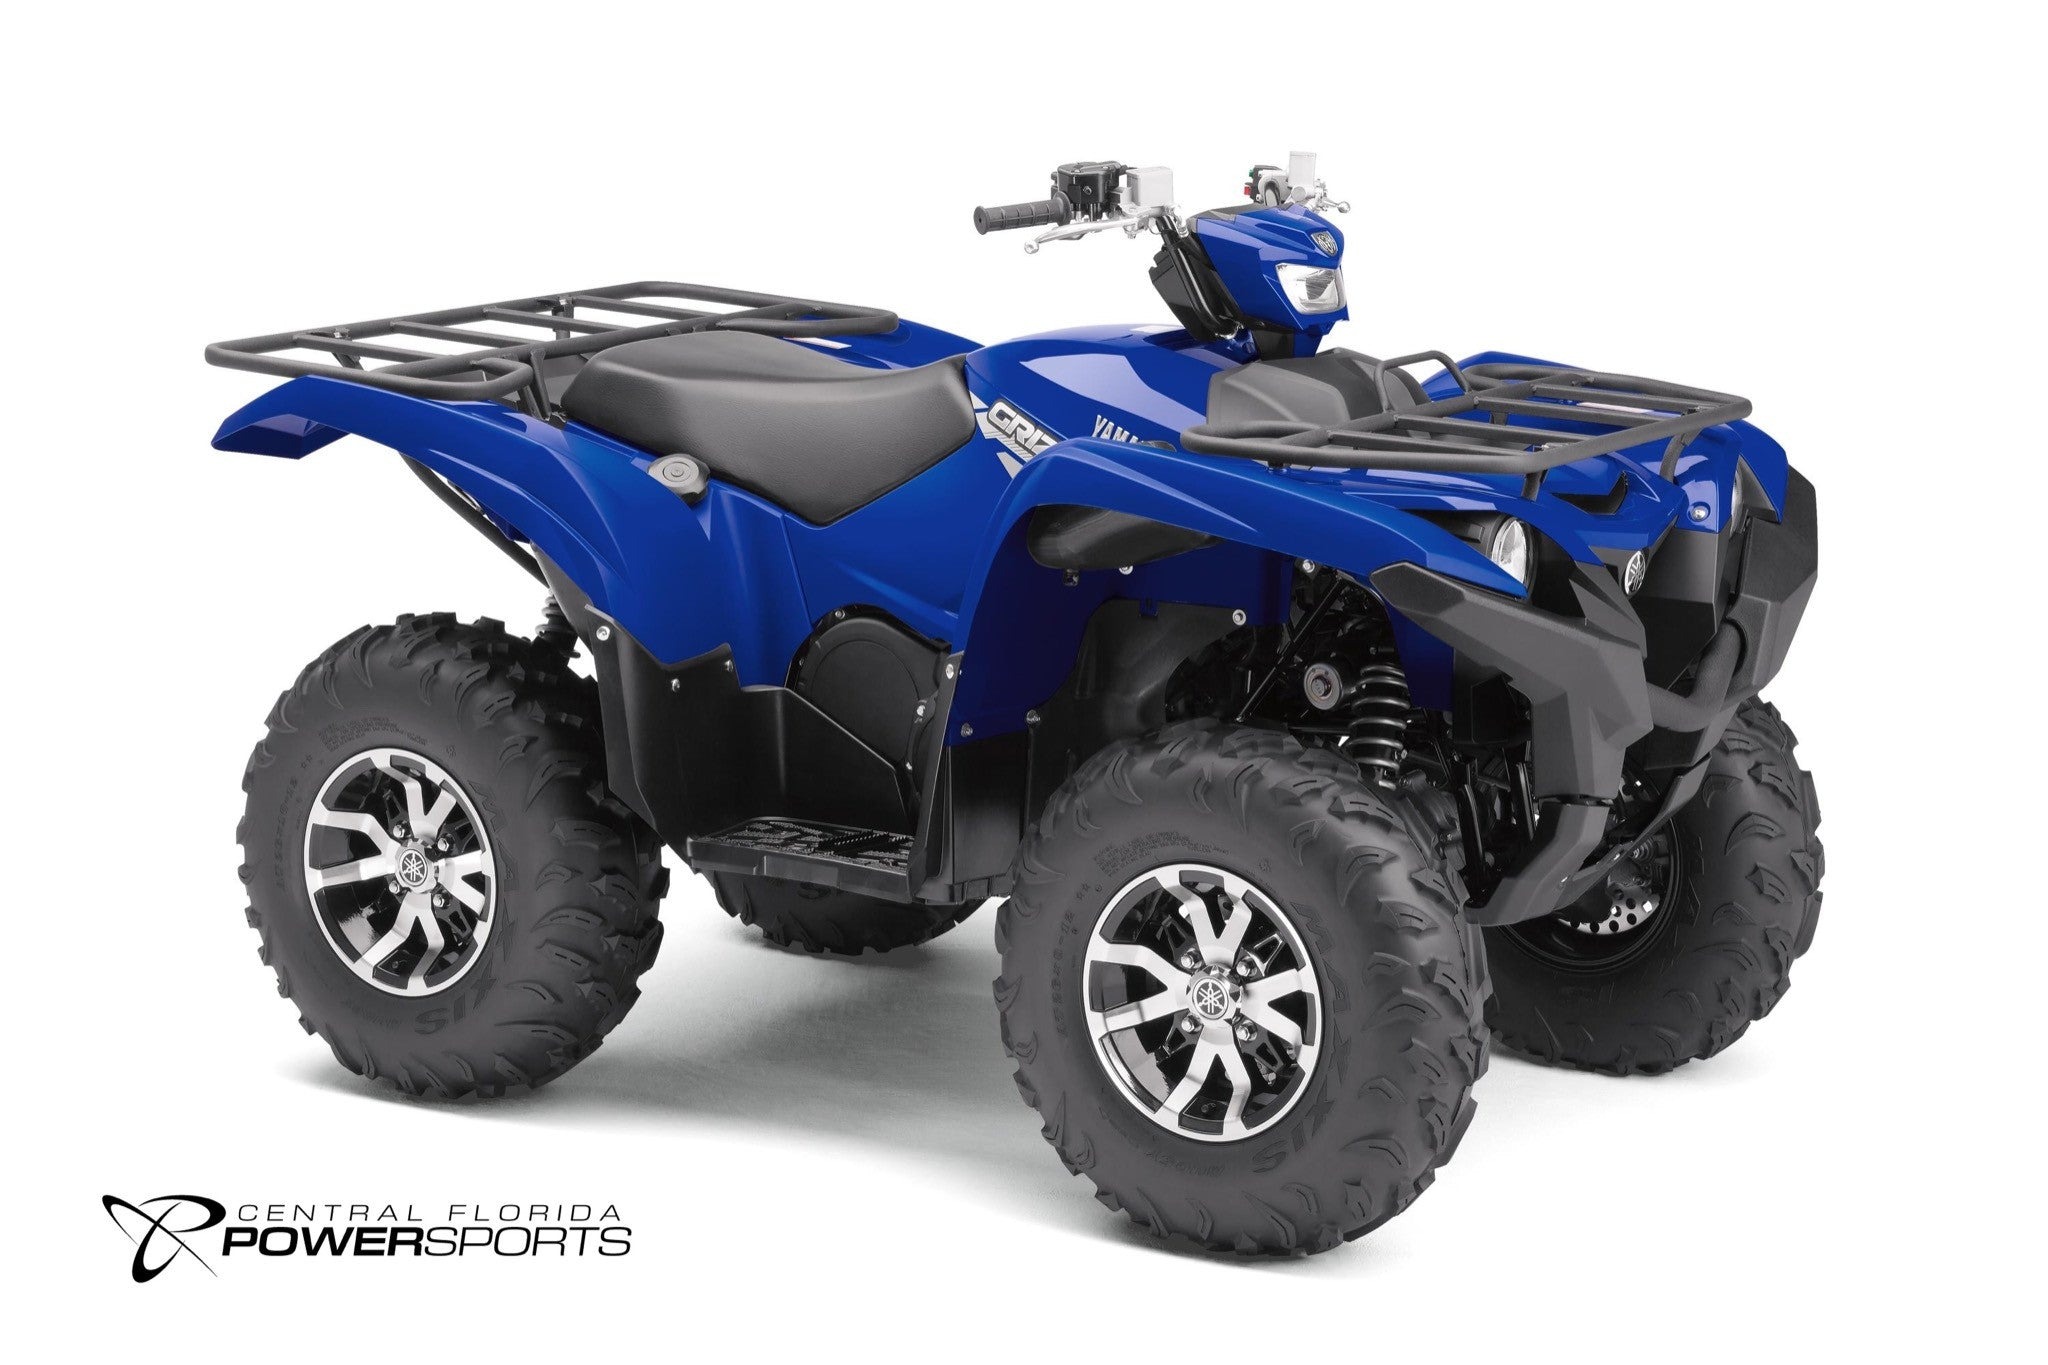 2017 yamaha grizzly 700 eps 4wd utility atv for sale